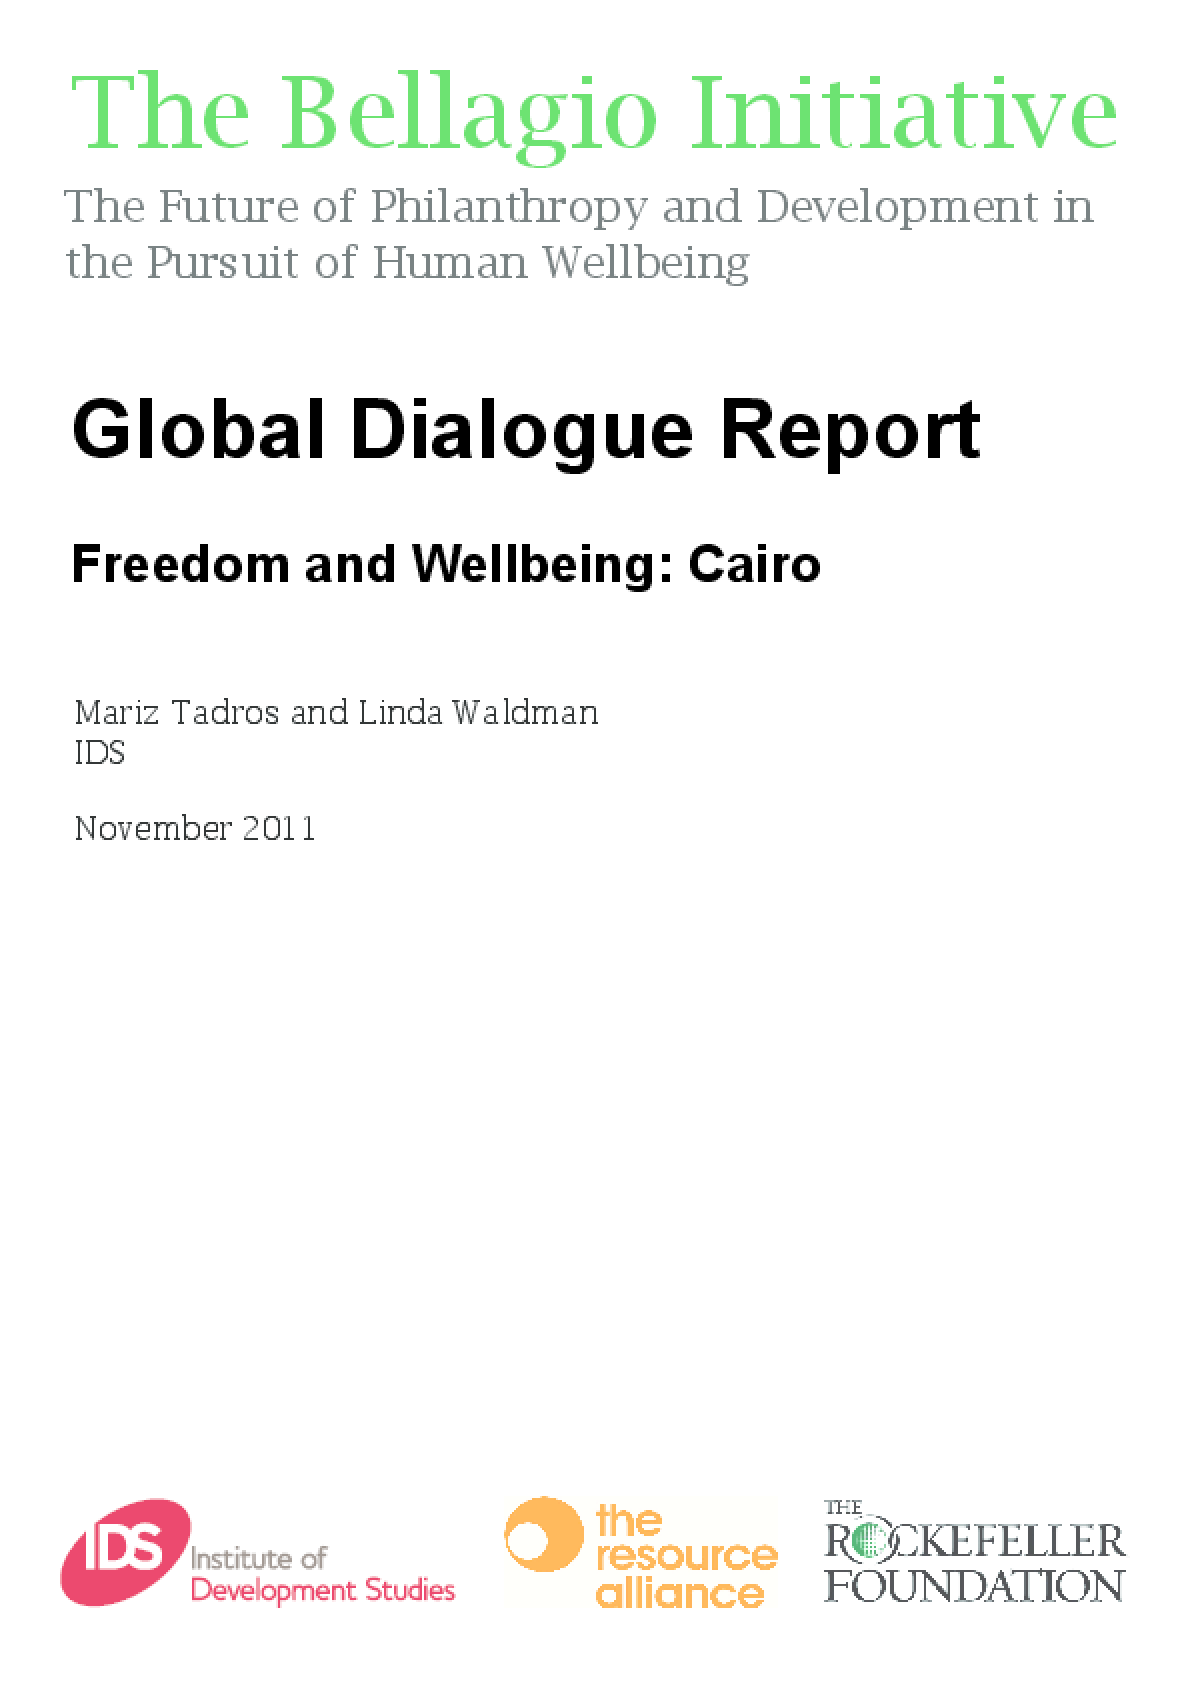 Global Dialogue Report - Freedom and Well-Being: Cairo